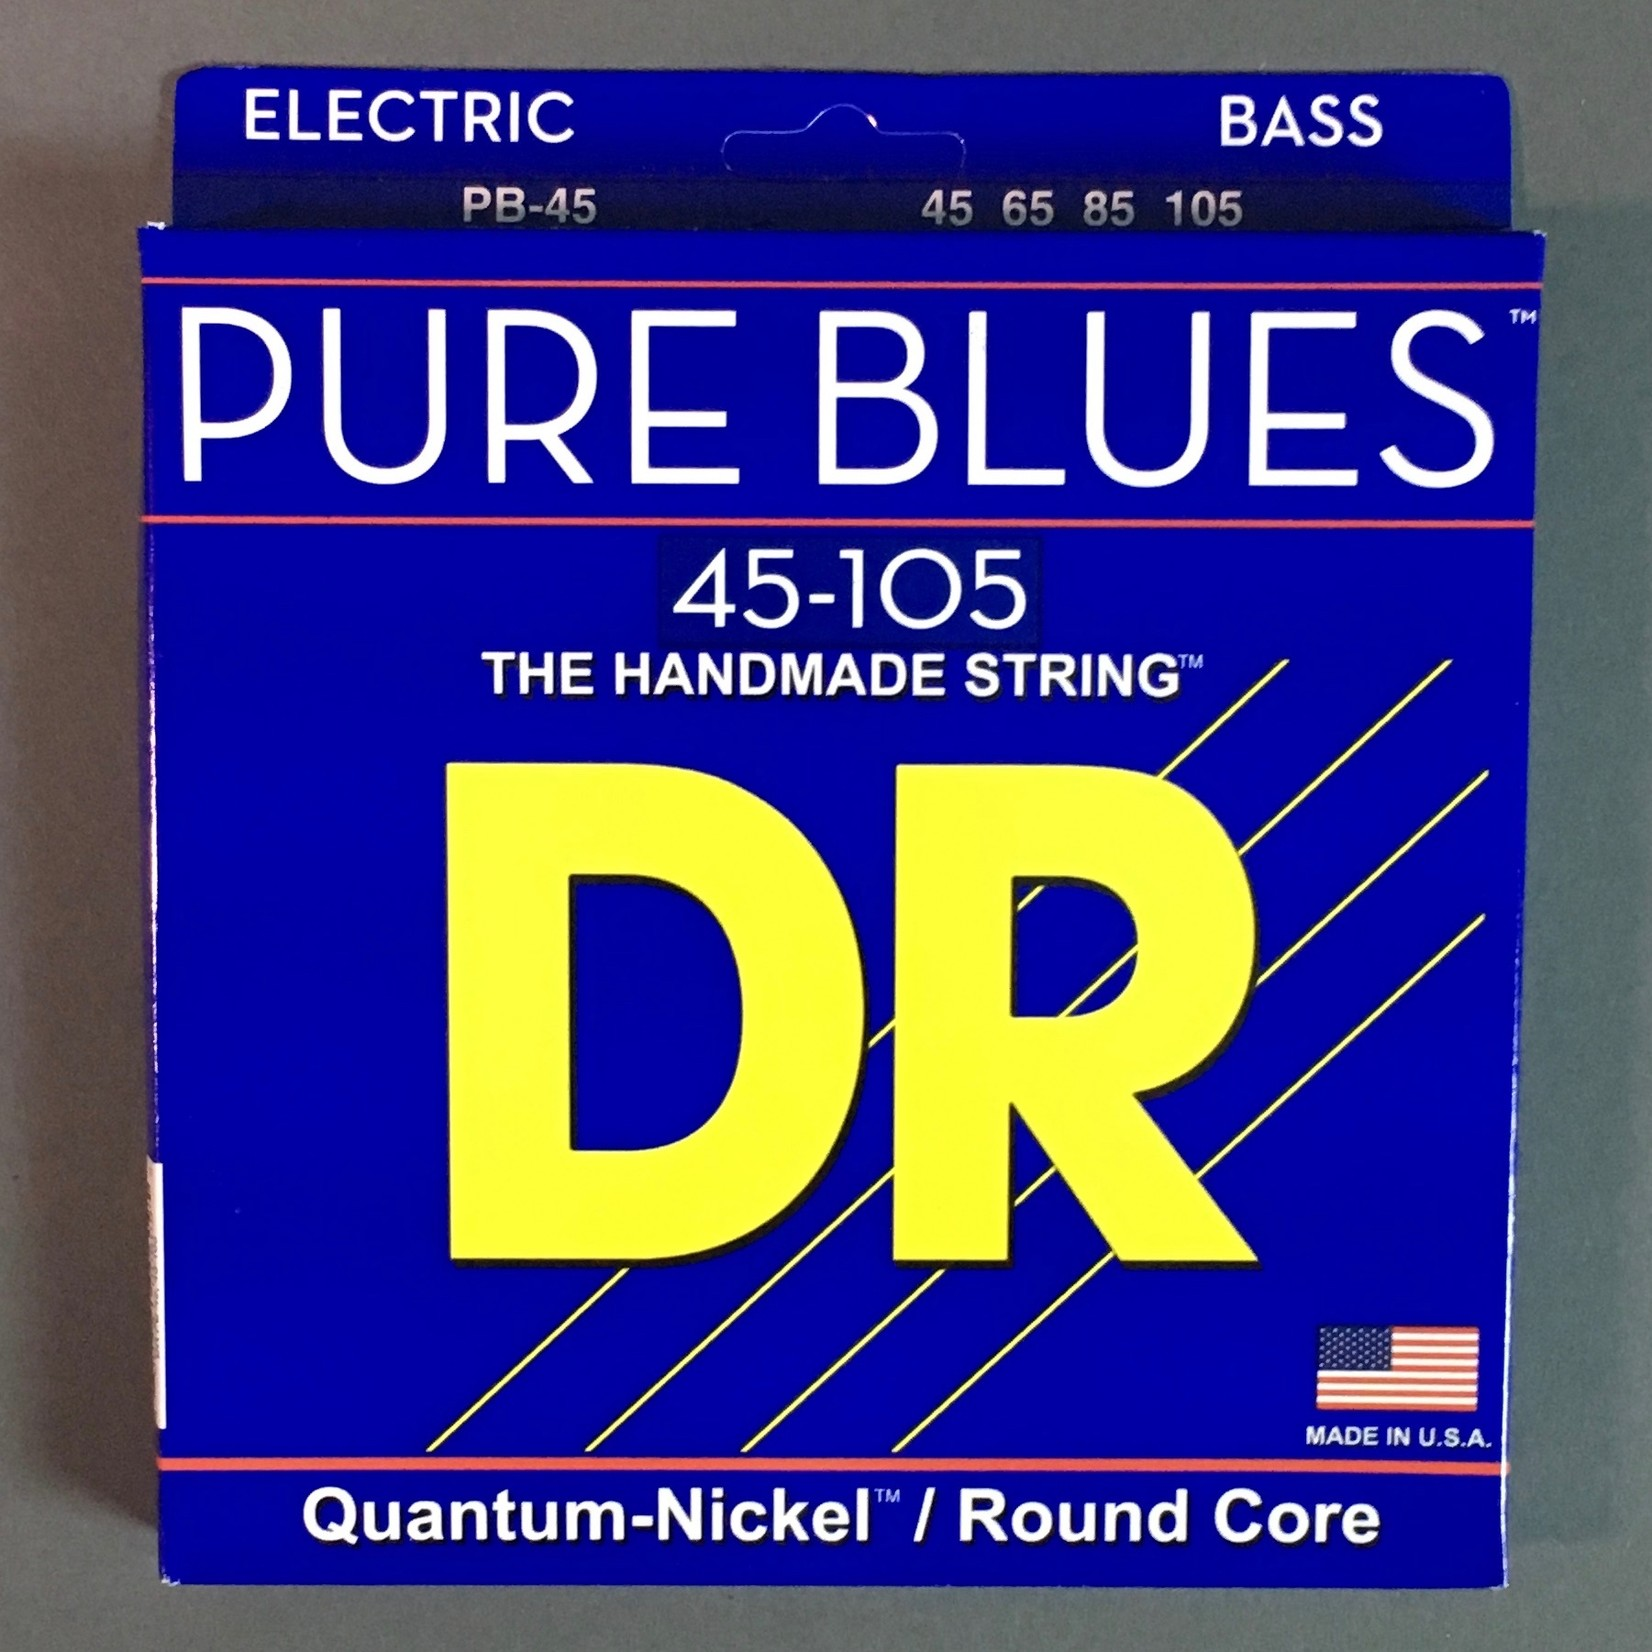 DR Strings DR Strings Pure Blues 45-105 Bass Guitar Strings (PB-45), Quantum-Nickel / Round Core